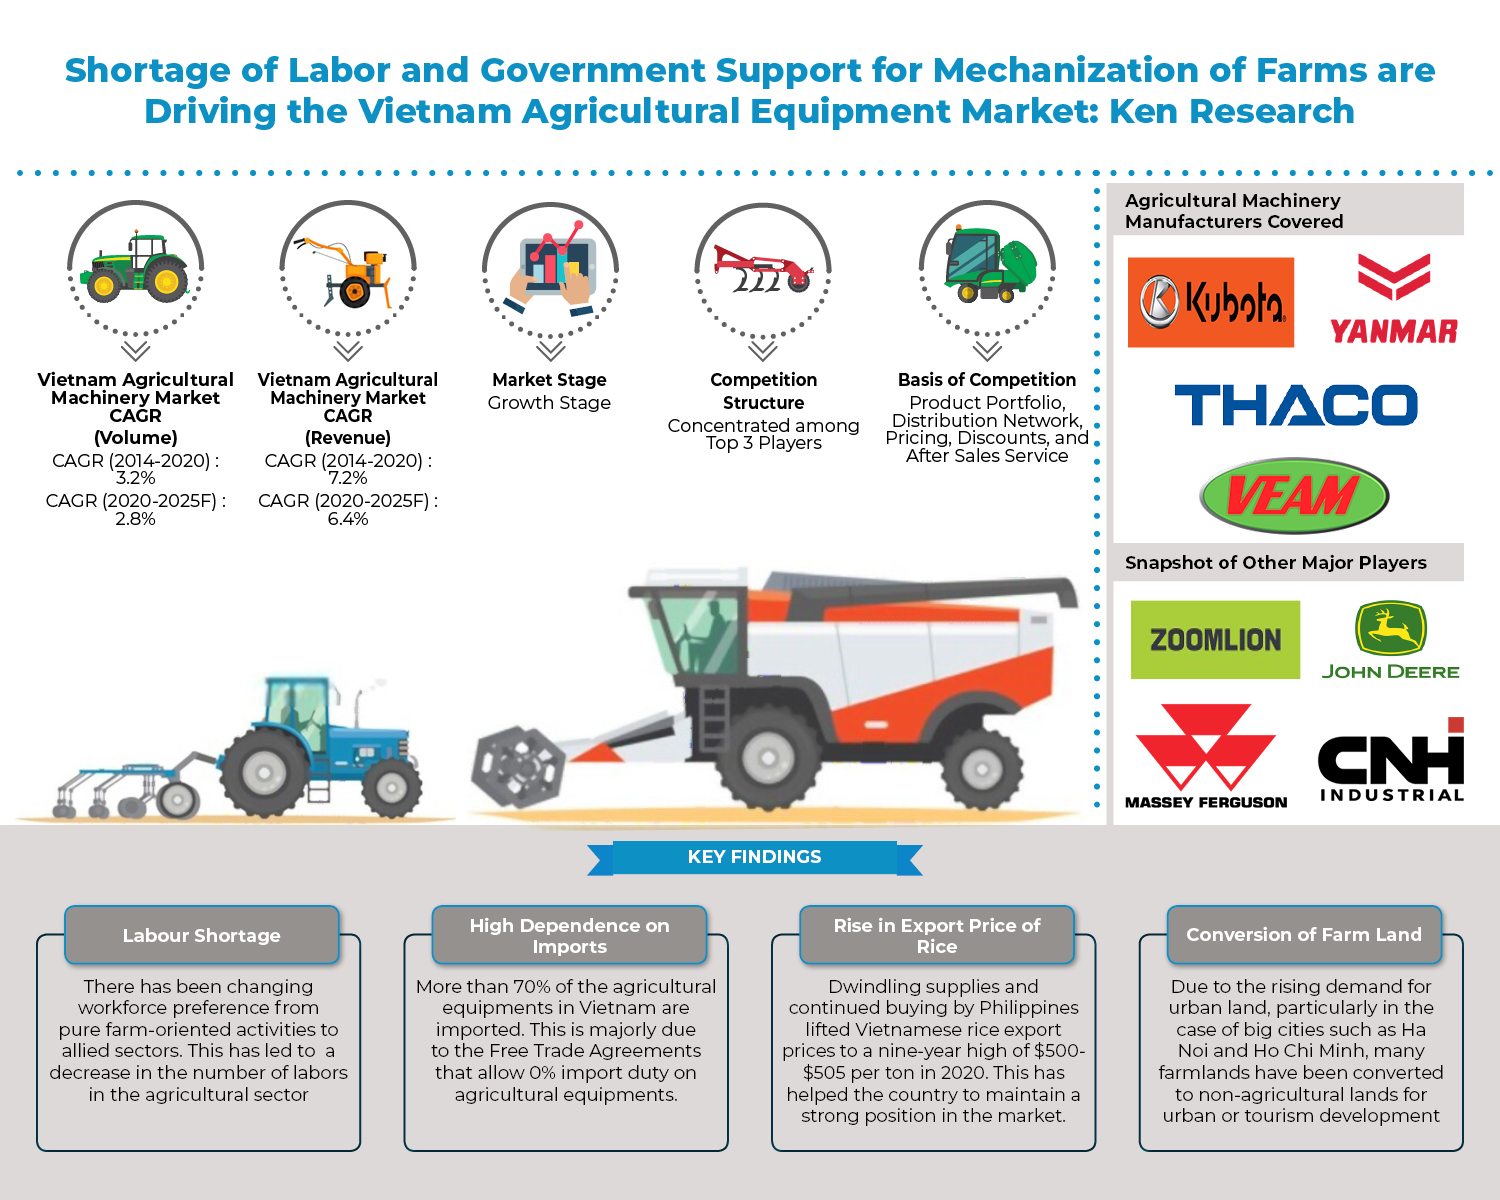 The Implementation of Supporting Policies by Government to Reduce Losses in Agriculture has contributed to Improving the Level of Mechanization in Vietnam: Ken Research